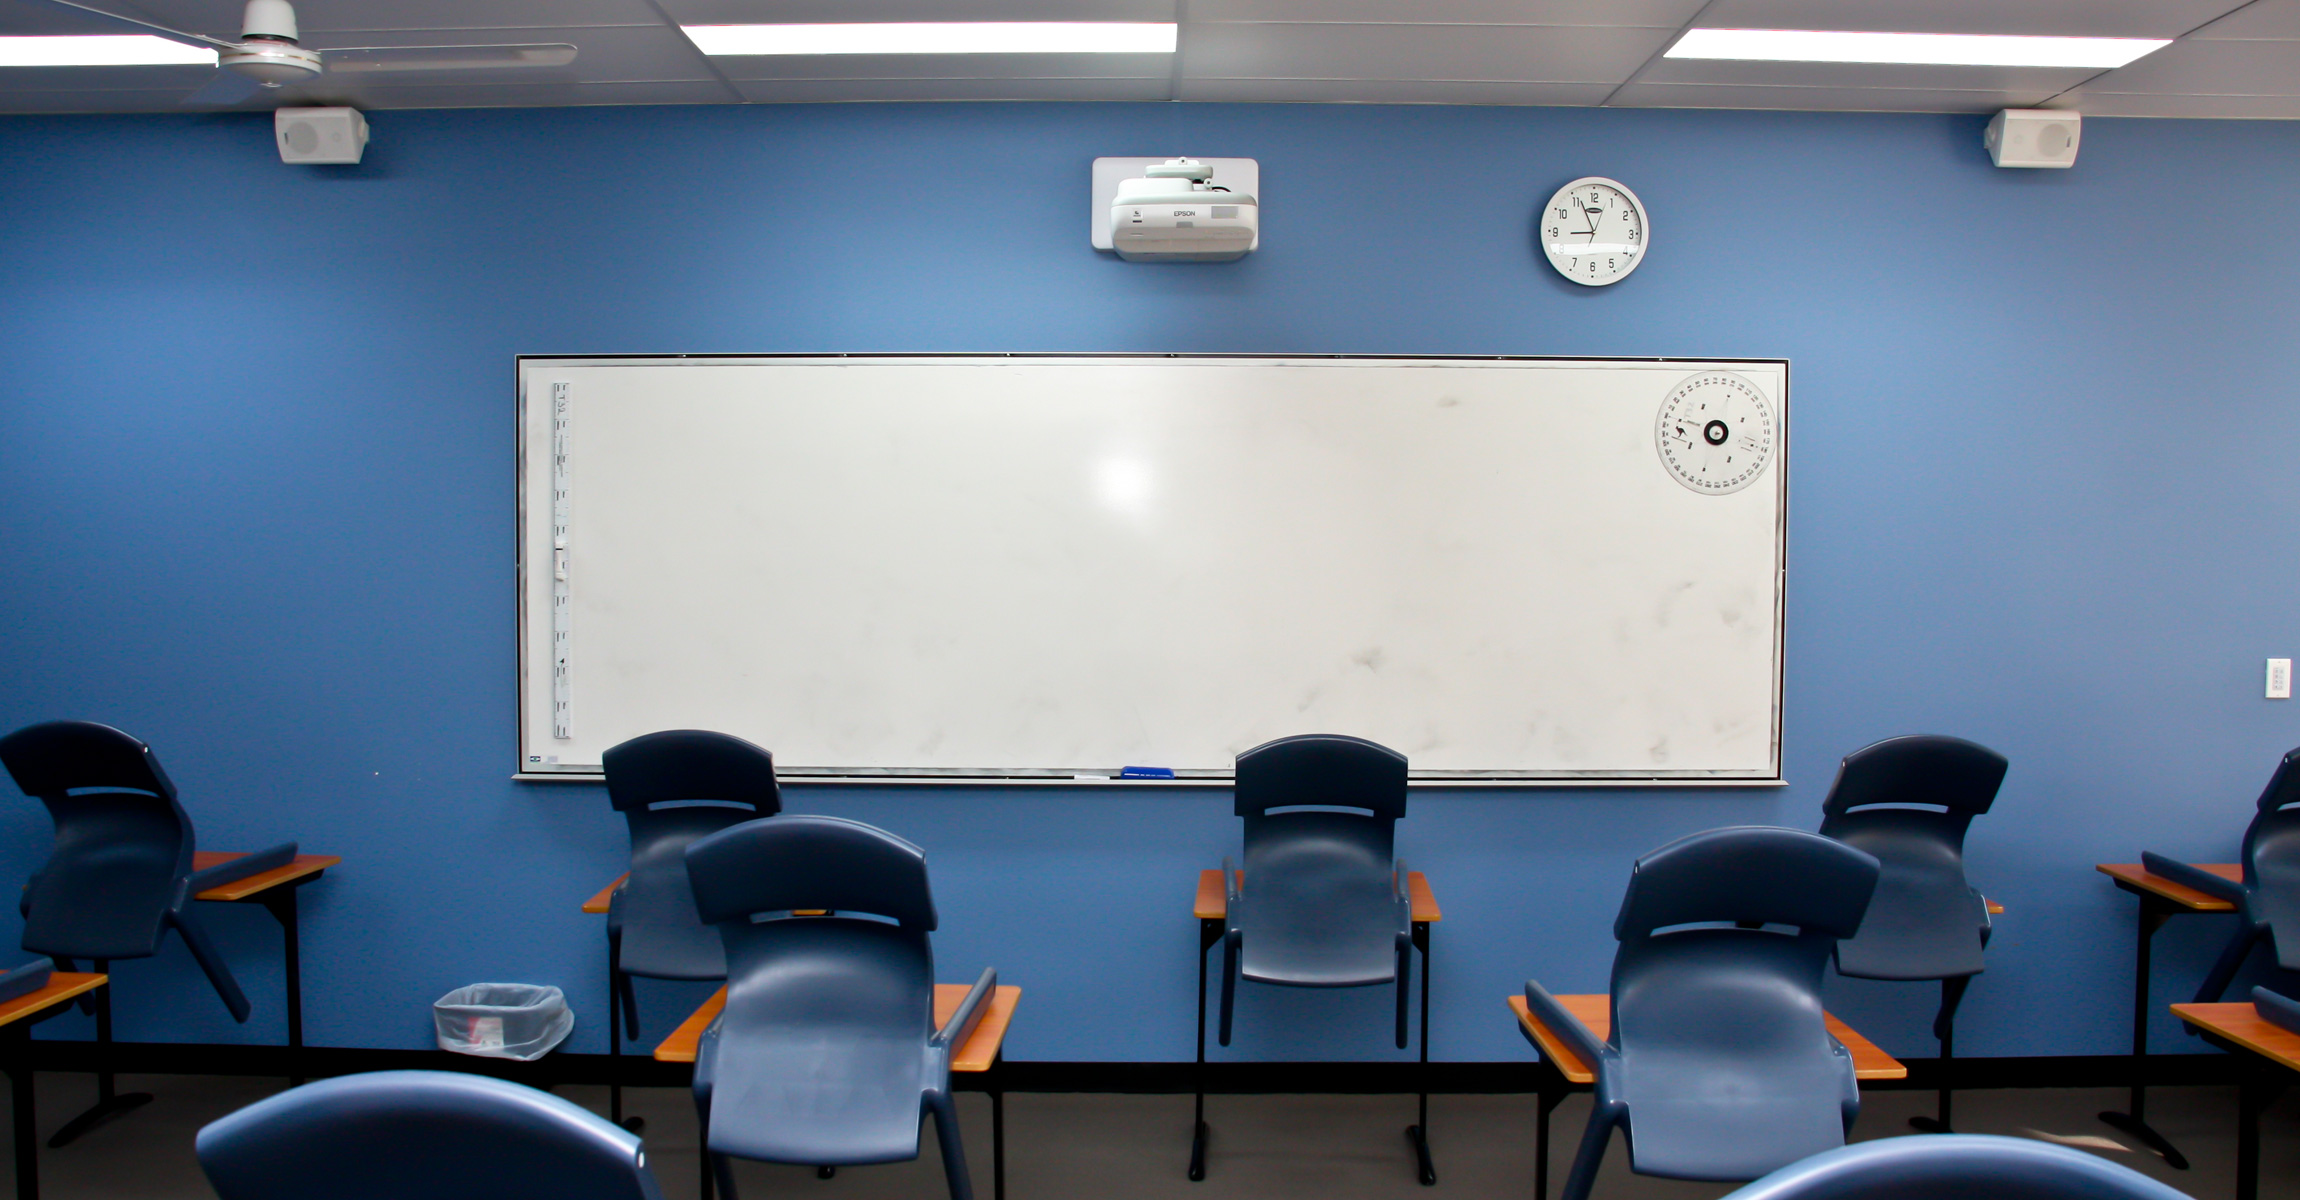 School Classroom Renovation